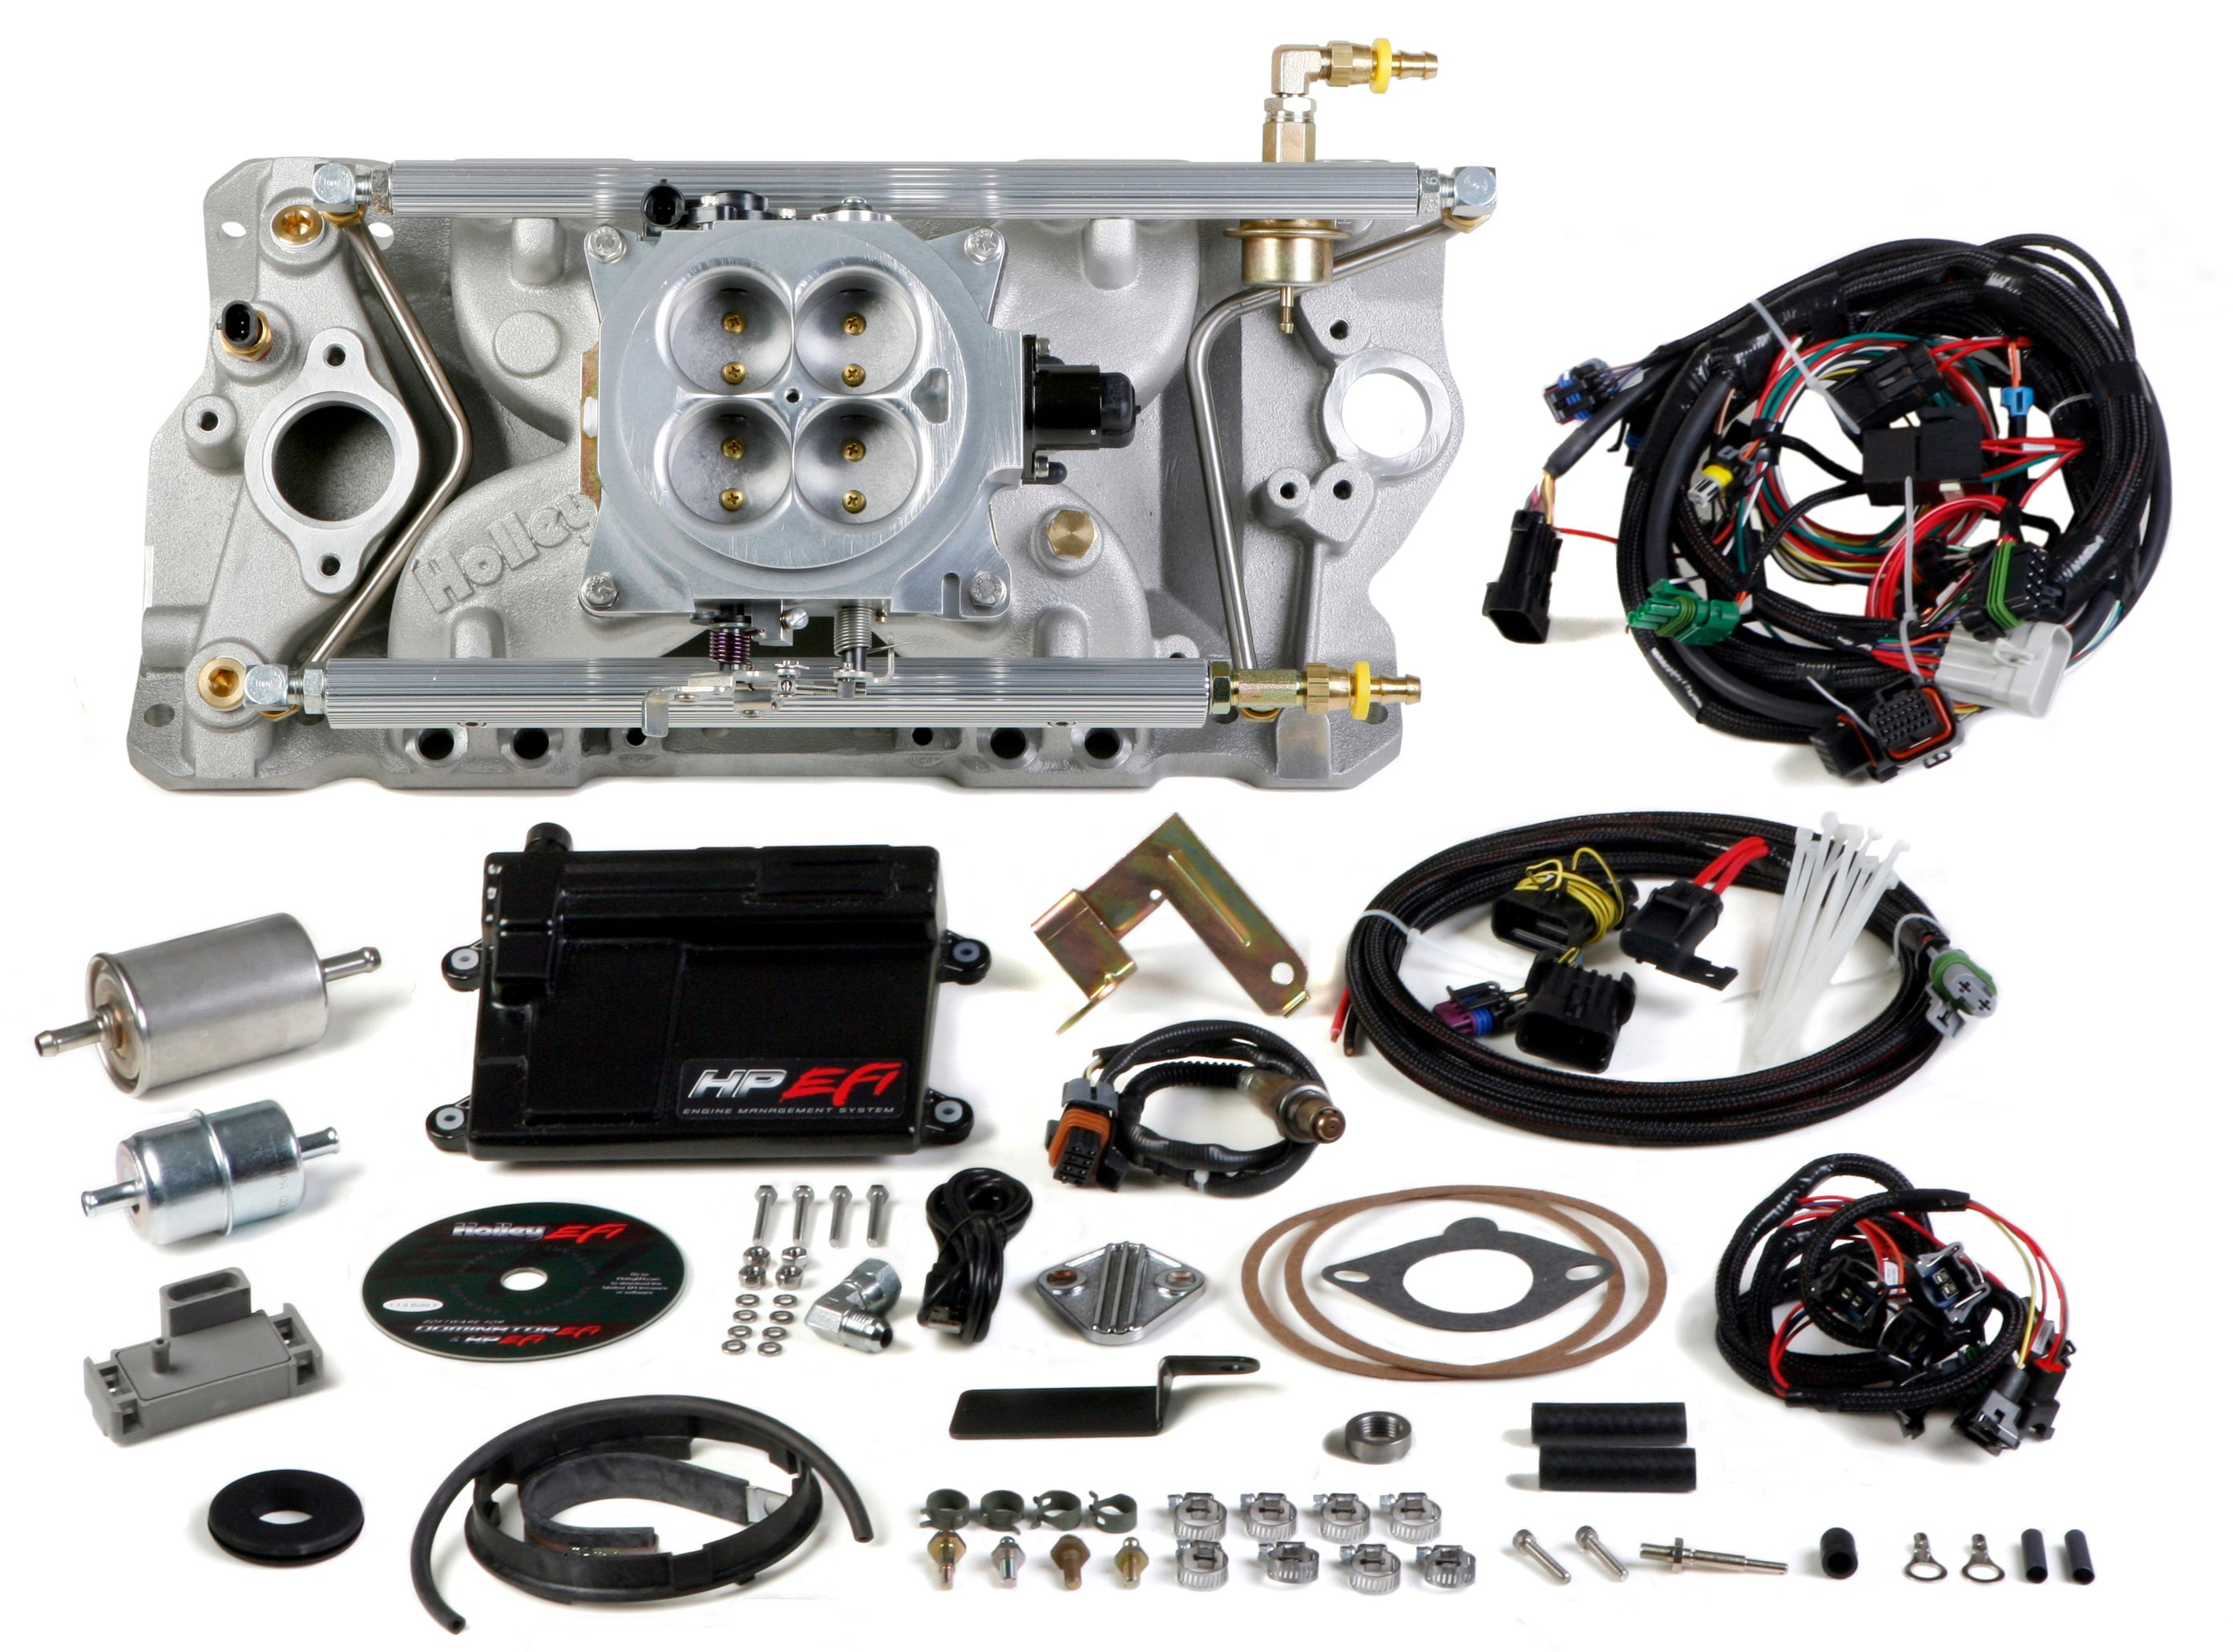 550-810 - HP EFI 4bbl Multi Port Fuel Injection System Image